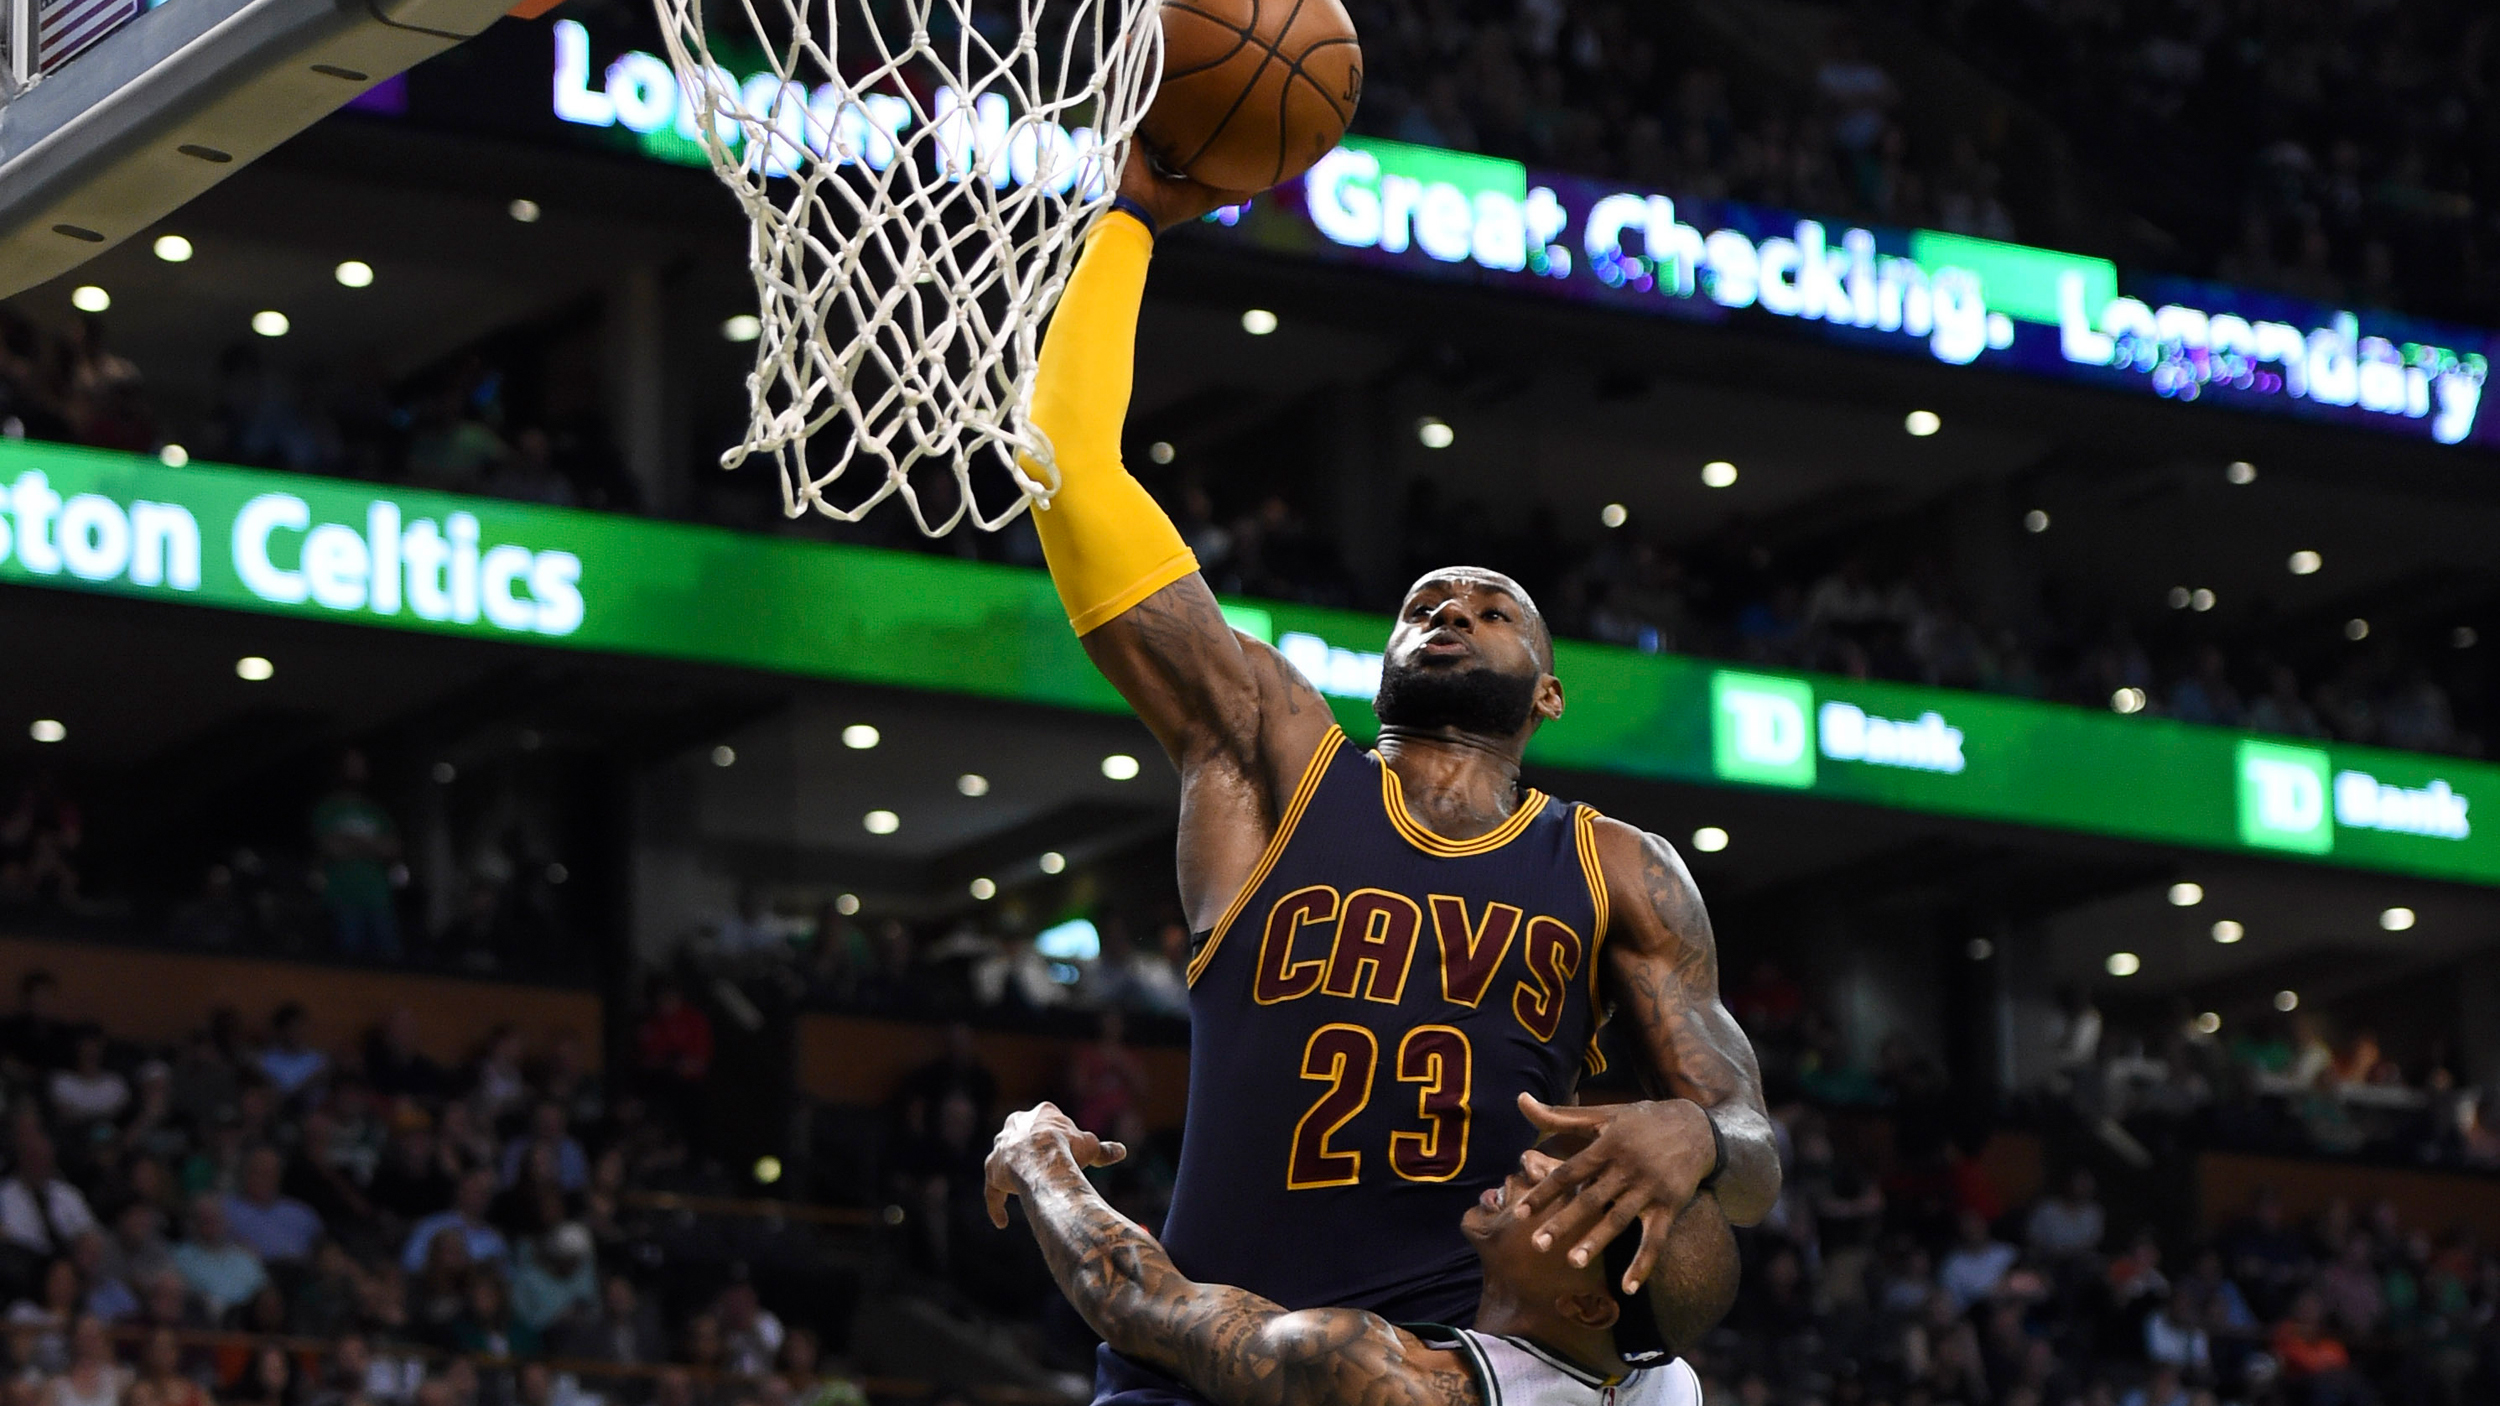 LeBron James nearly baptized Isaiah Thomas on dunk attempt late in Game 1 — The Undefeated